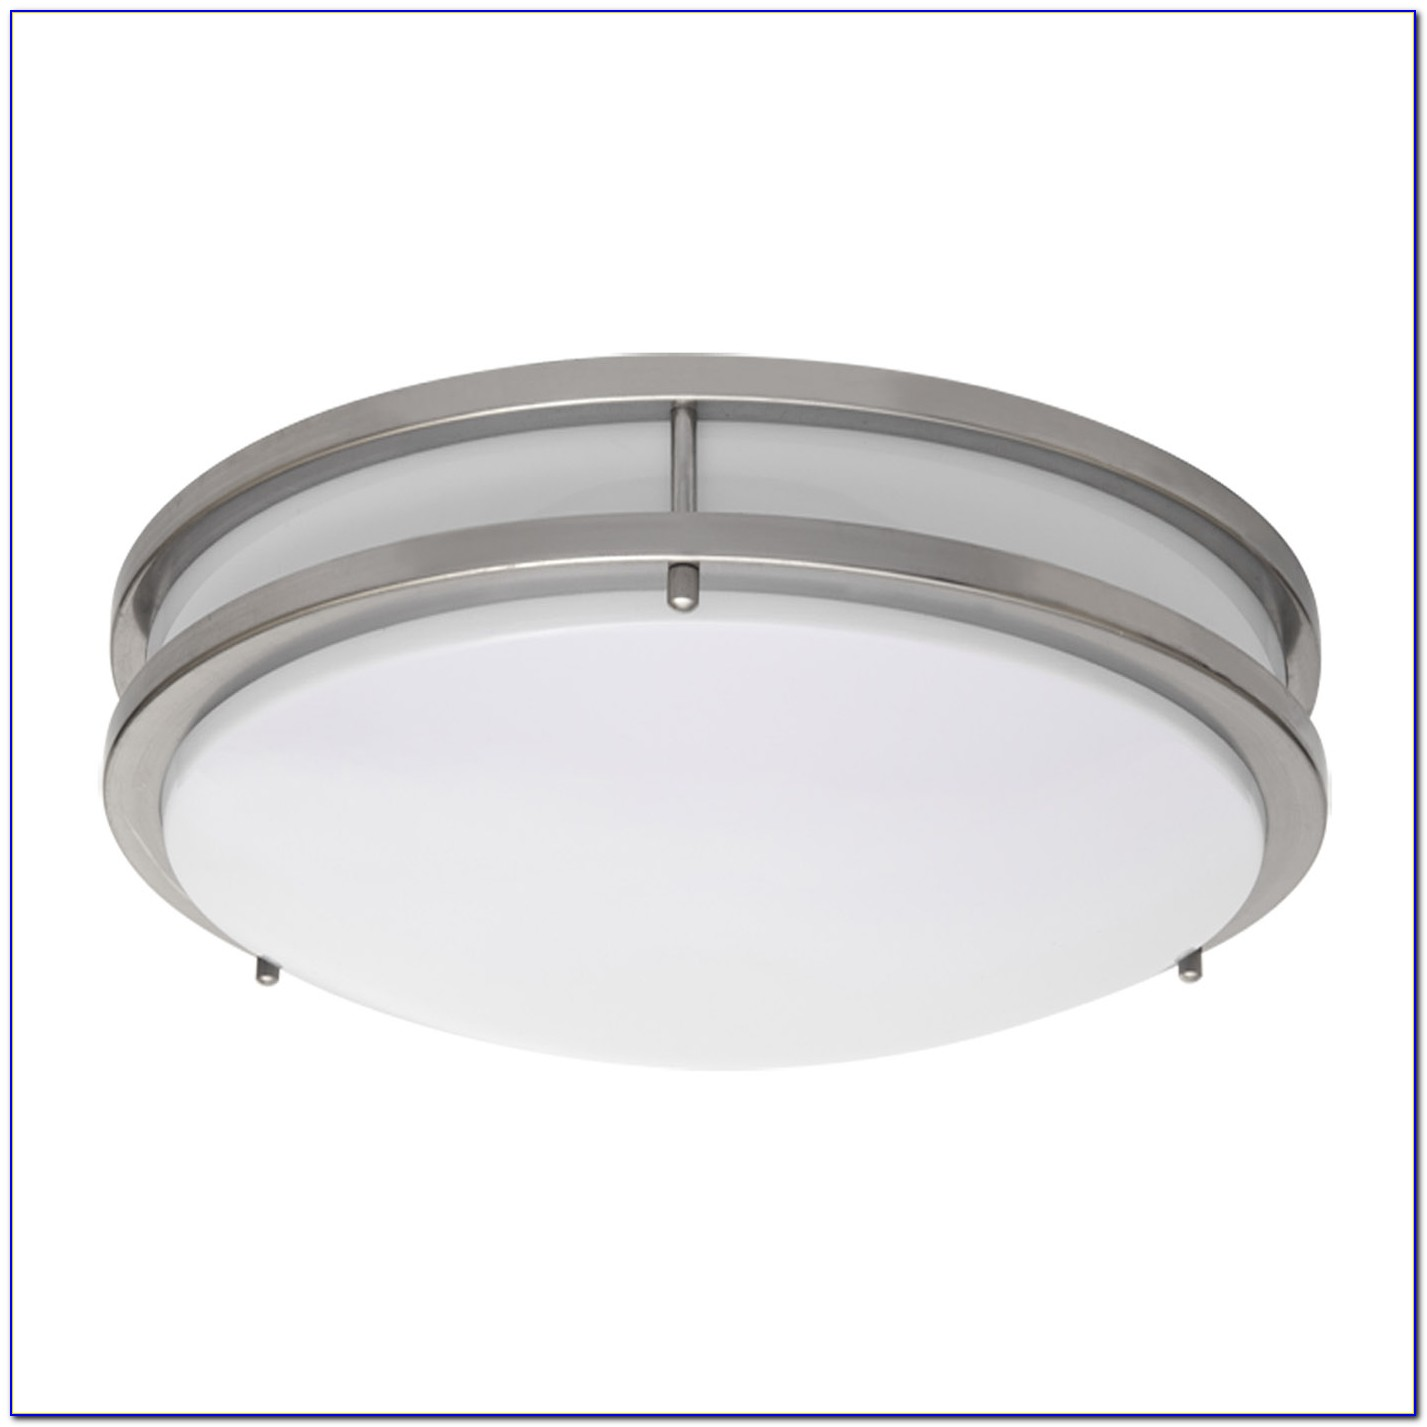 Ceiling Light Flush Mount Led